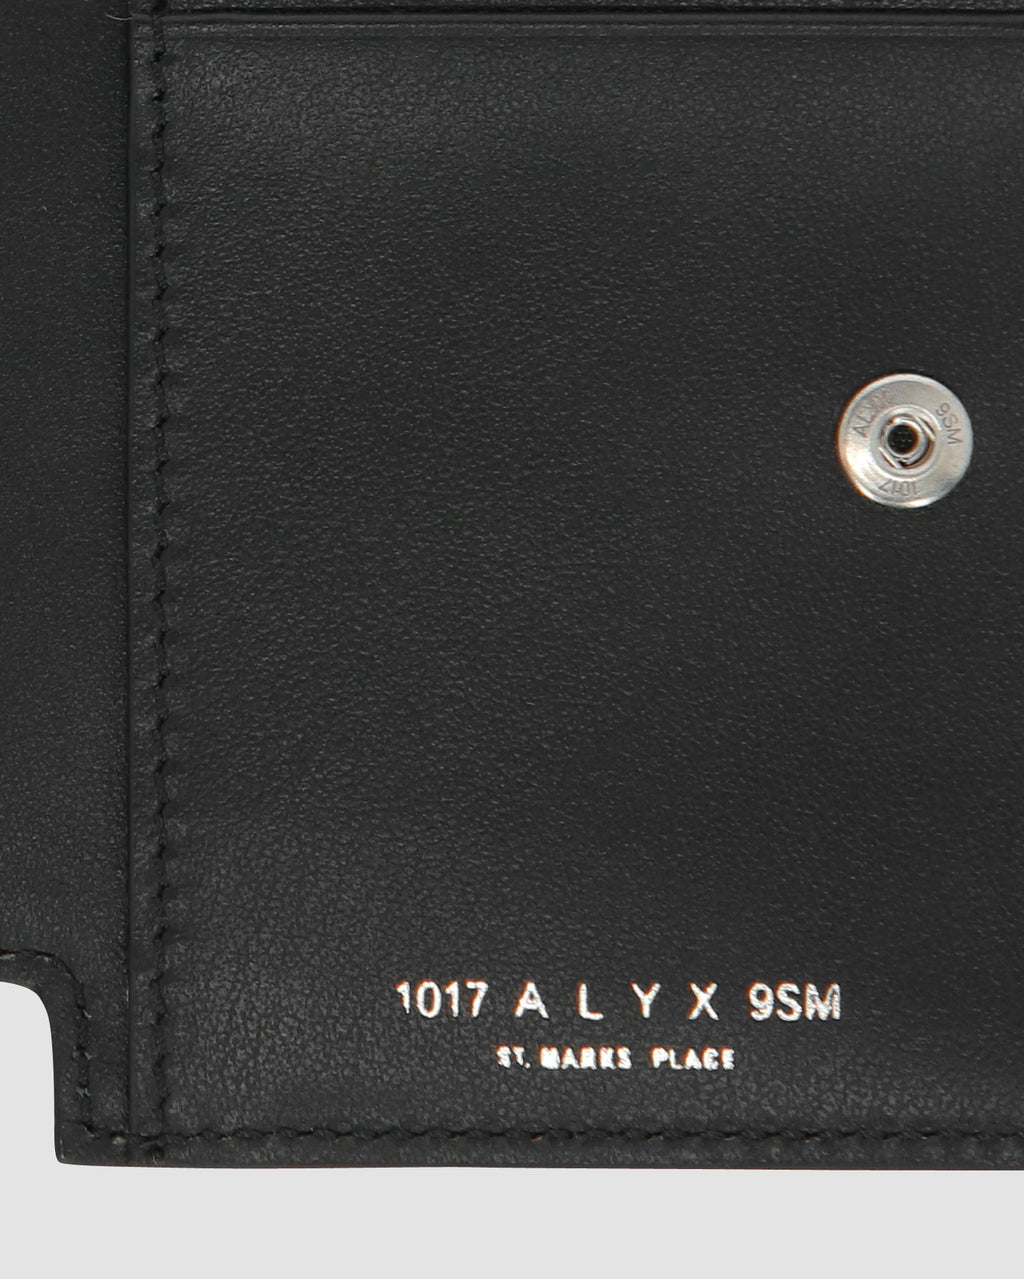 1017 ALYX 9SM | MARTIN CARD HOLDER | Wallet | 270120, Accessories, BLACK, F19, Man, UNISEX, Wallet, WALLETS, Woman